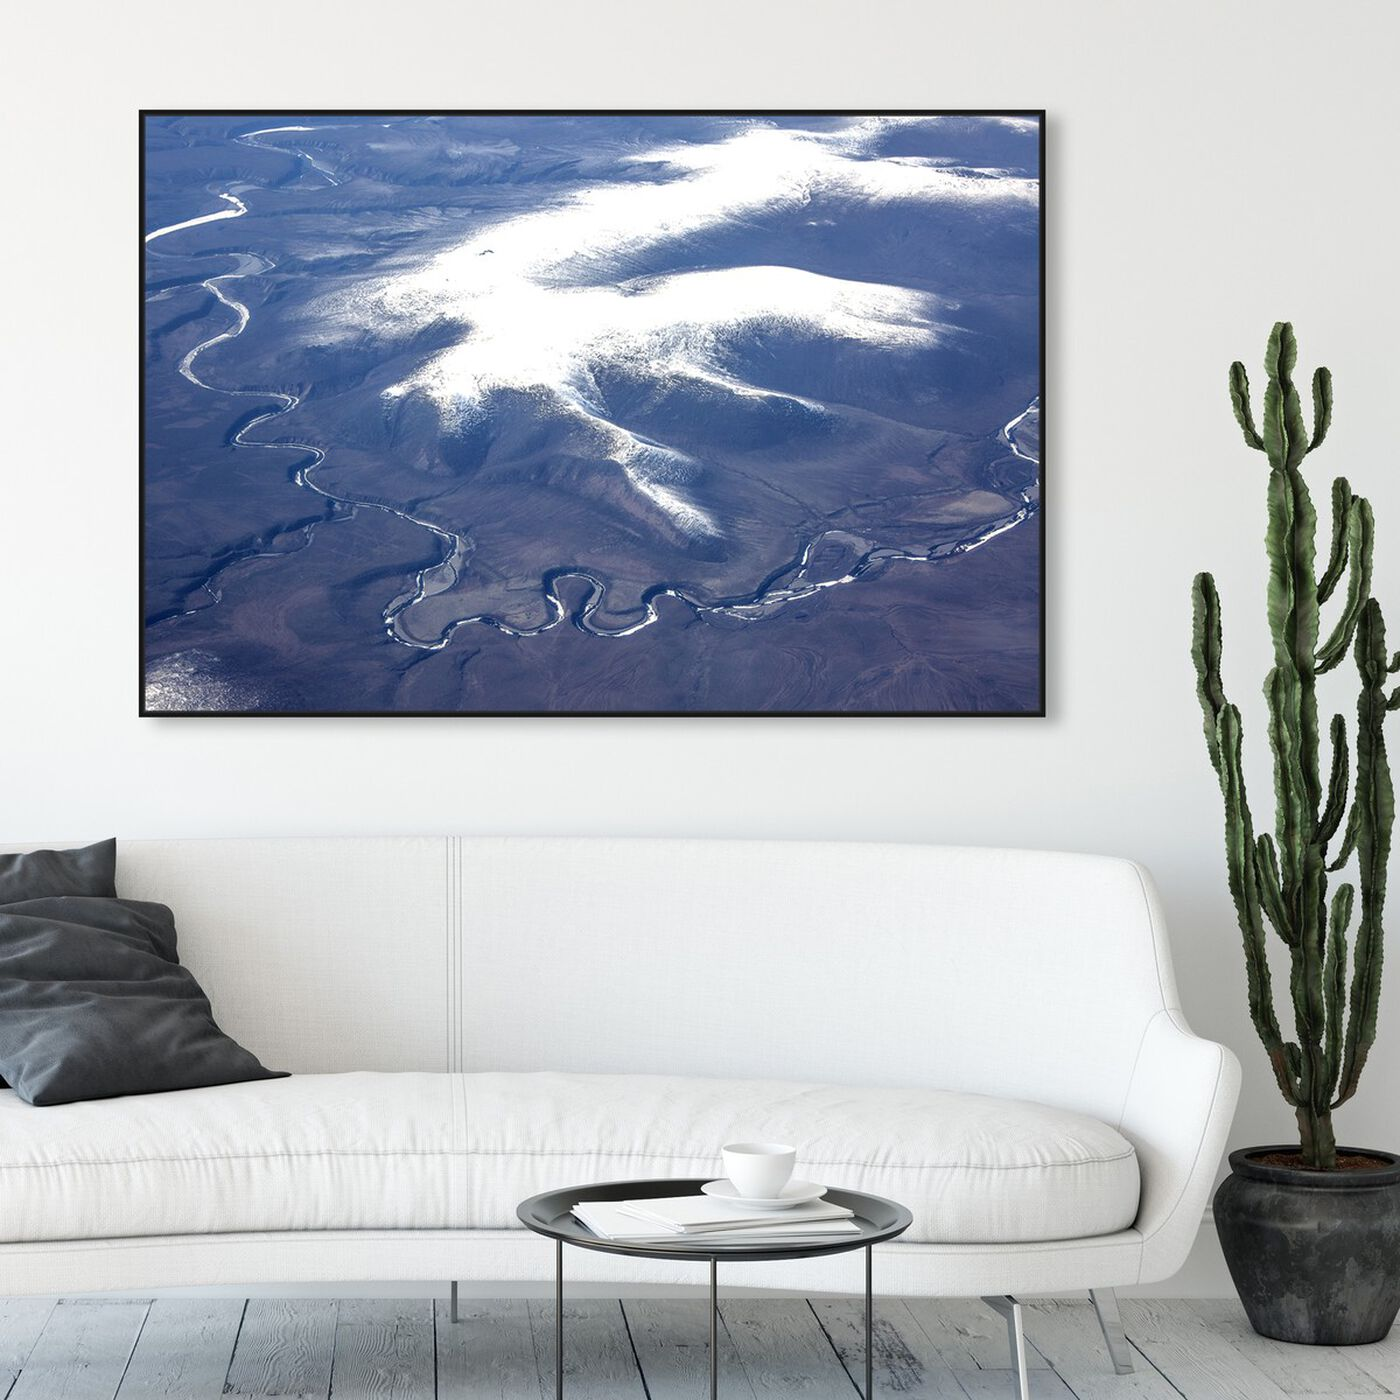 Hanging view of Curro Cardenal - Aero View VII featuring nature and landscape and mountains art.